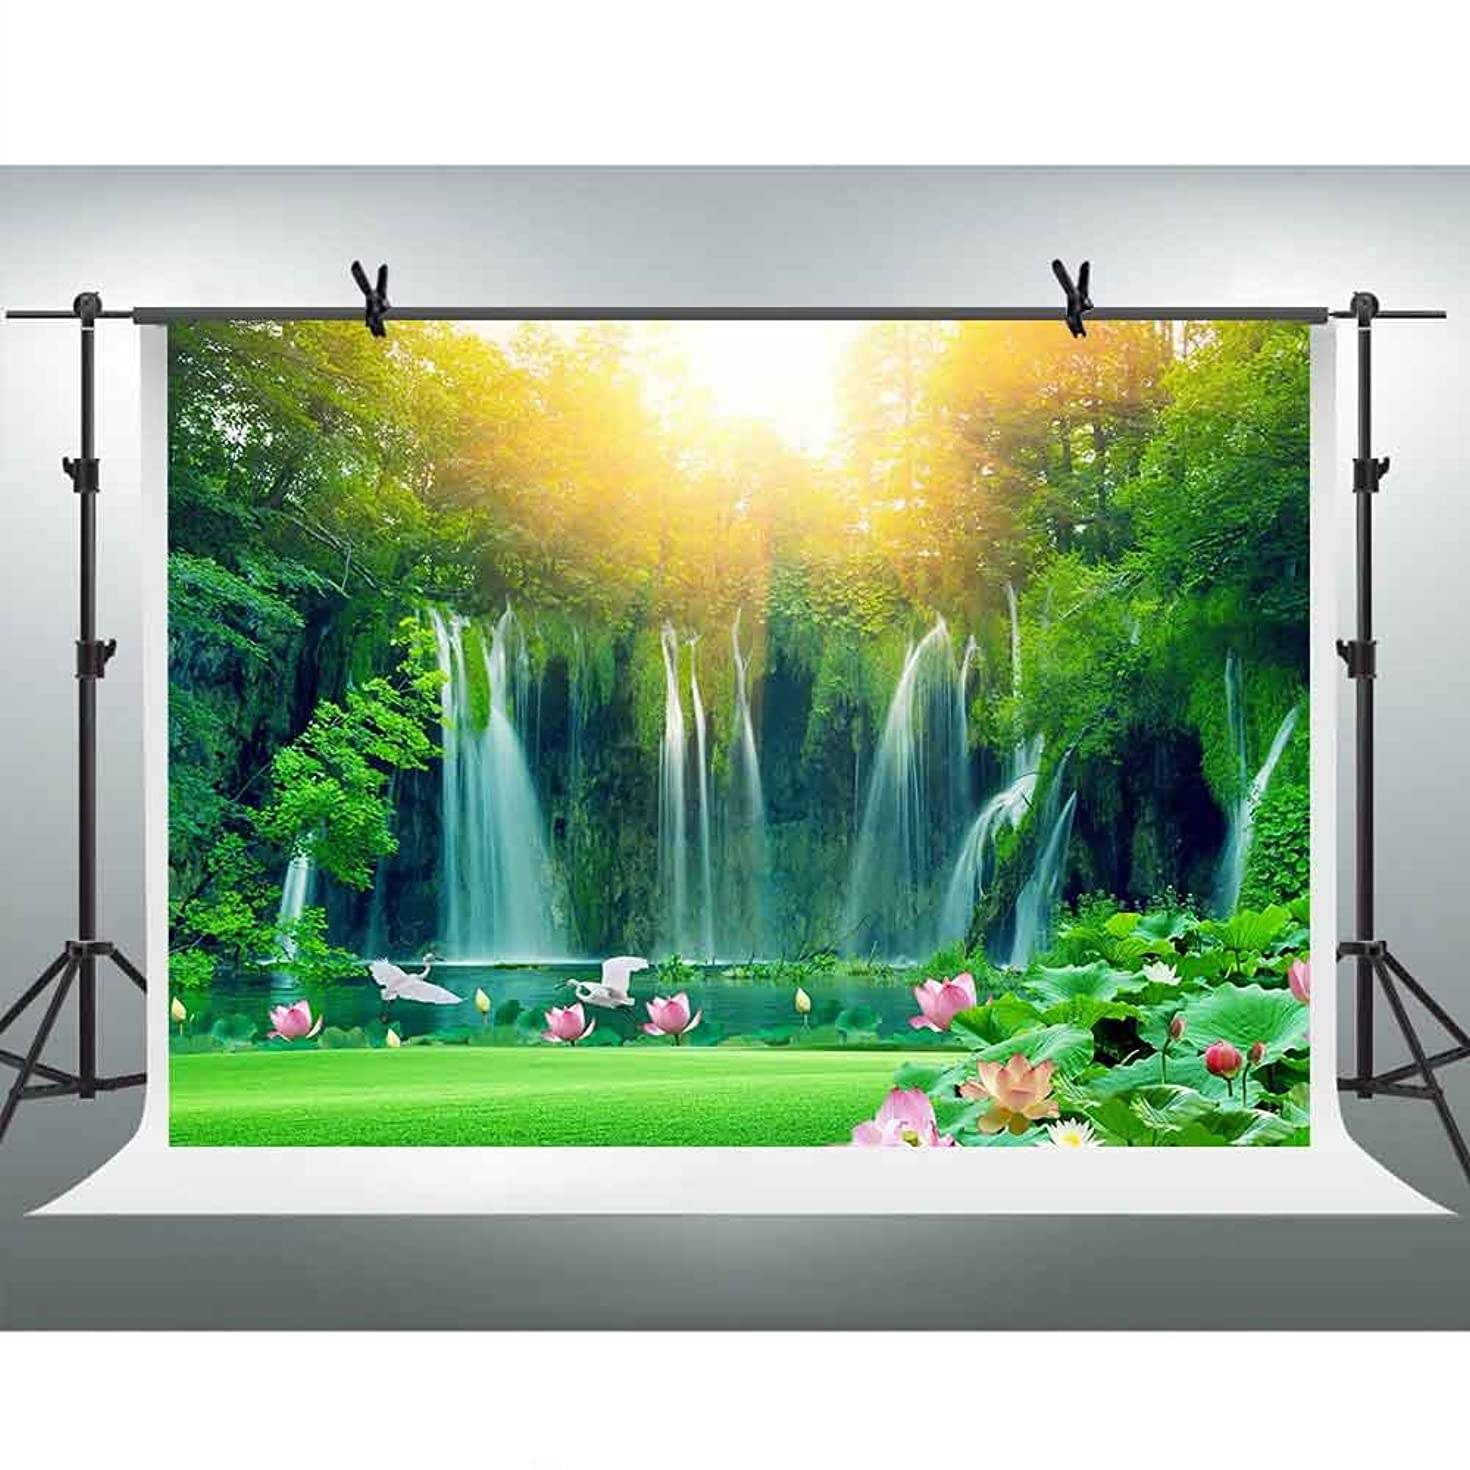 FHZON 10x7ft Waterfall Backgrounds for Photography Green Trees Forest Lotus Lake Sunshine Backdrop Travel Picture Wallpaper Decoration Photo Booth Video Prop TMFH021